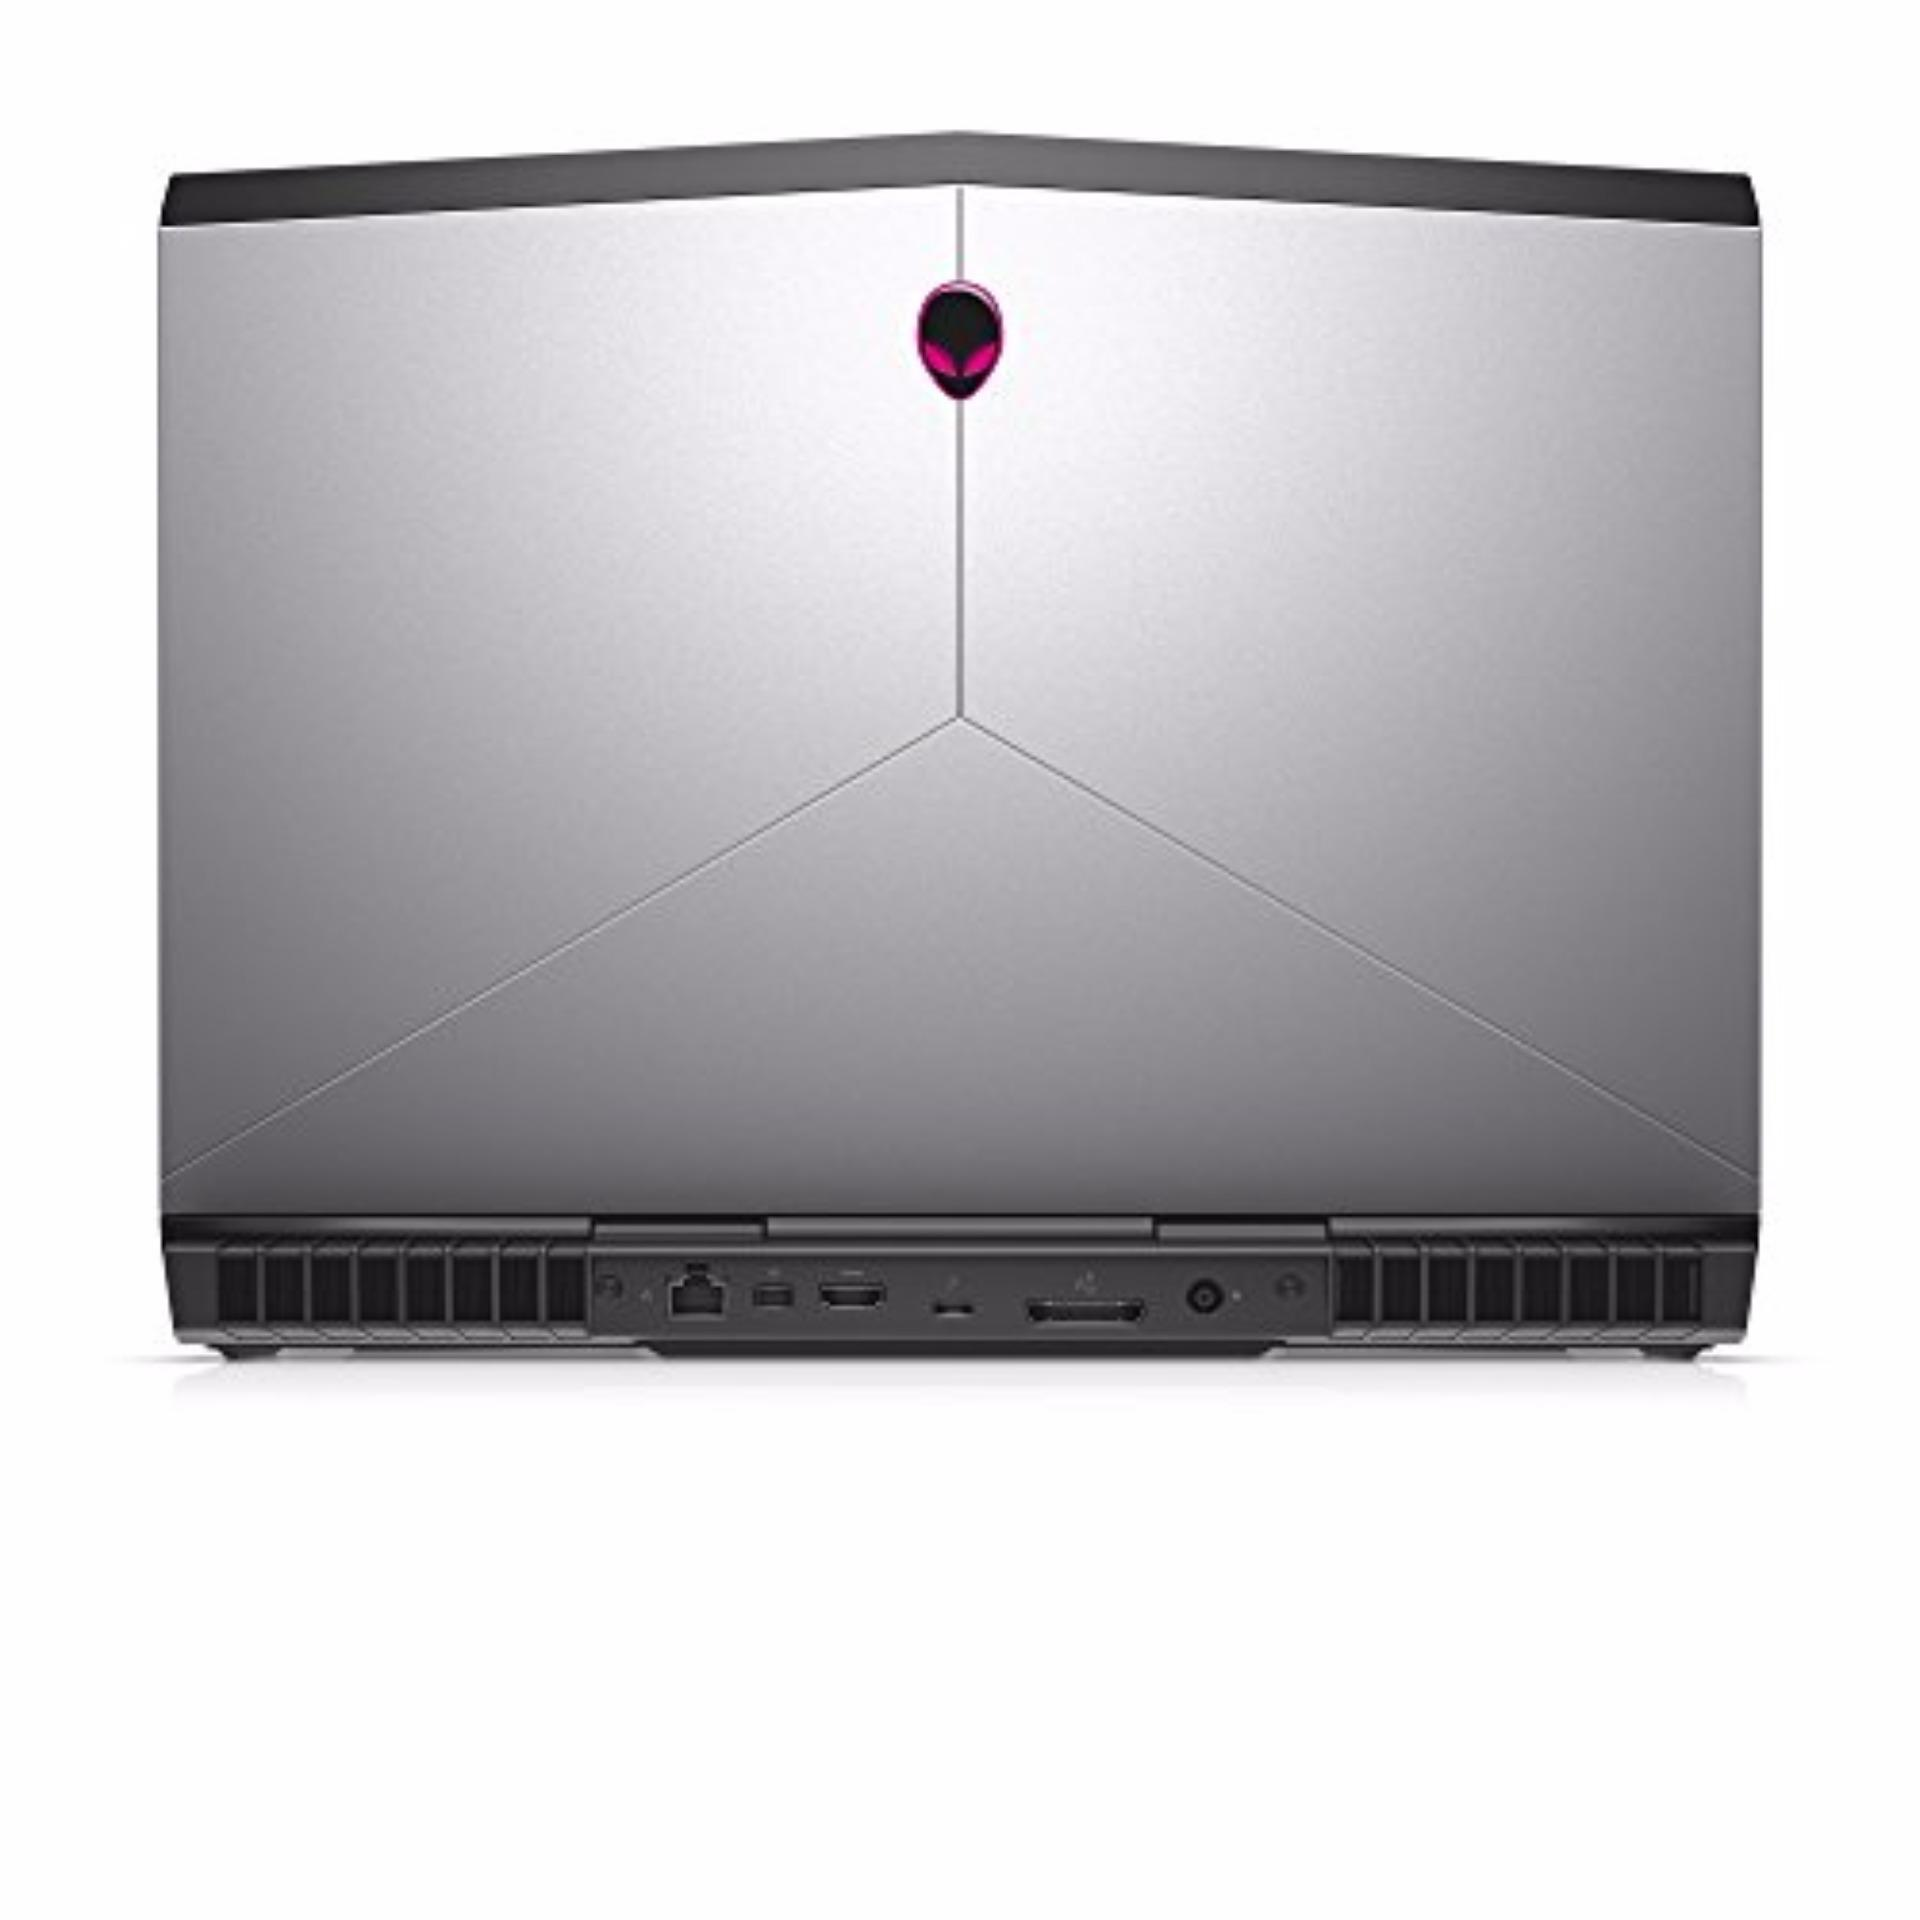 Alienware 15 R3 Gaming Laptop (7th Gen) (GTX1060) With 120Hz Gaming Laptop *END OF MONTH PROMO*